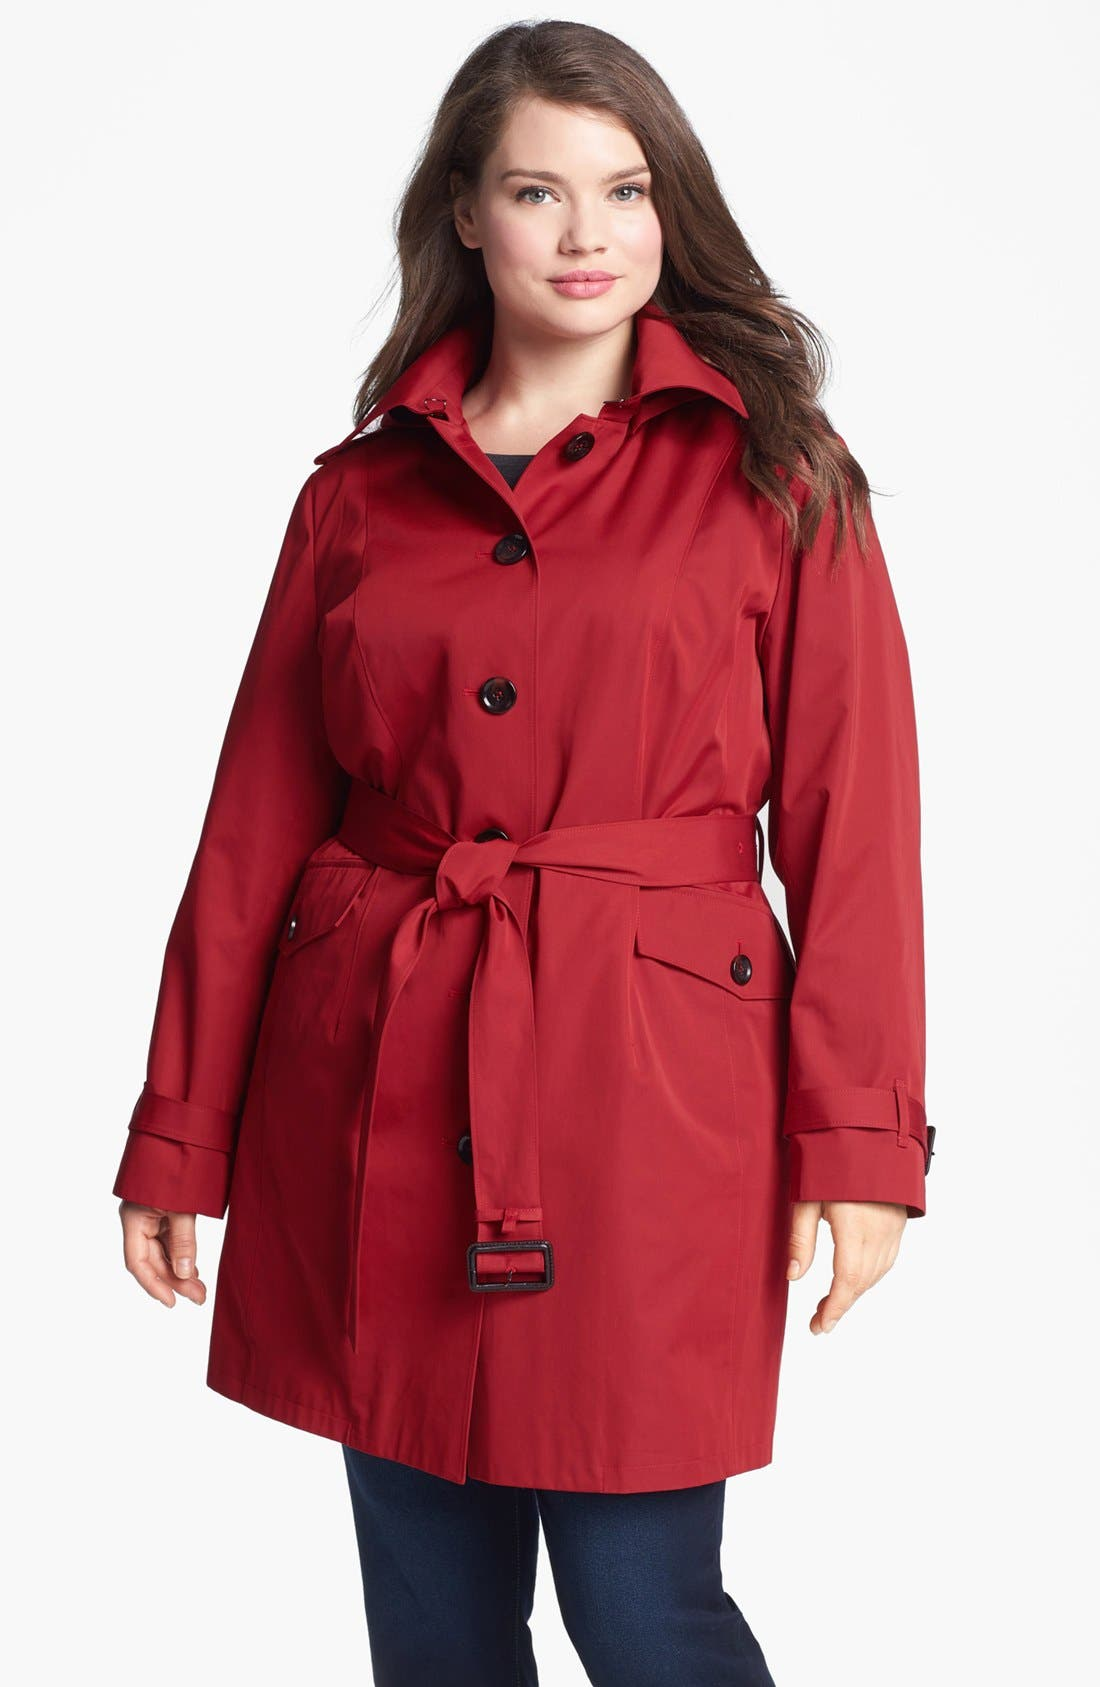 Alternate Image 1 Selected - MICHAEL Michael Kors Belted Trench with Detachable Liner (Plus Size)